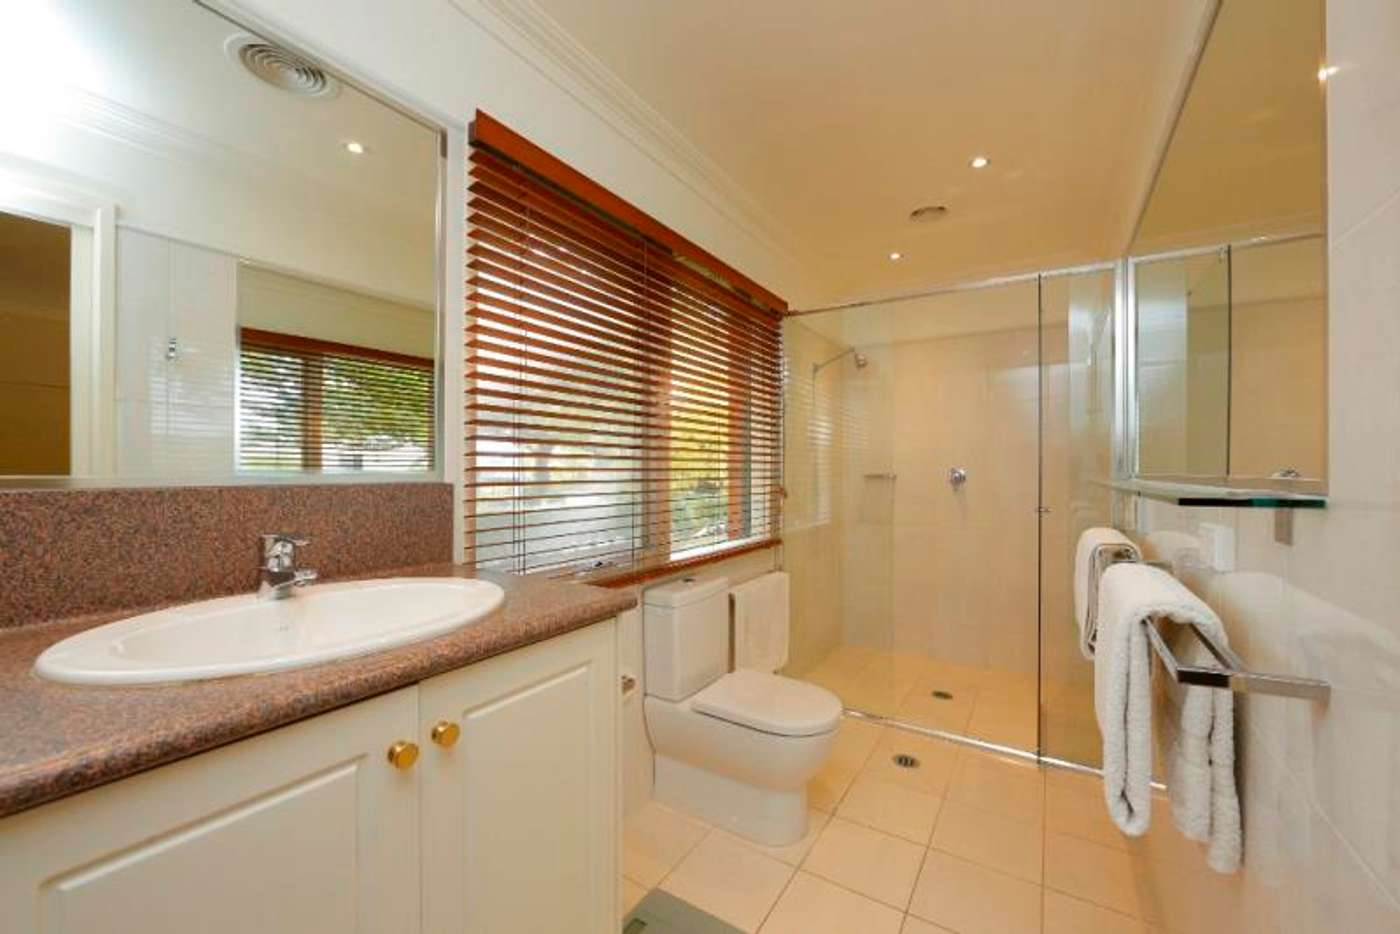 Sixth view of Homely house listing, 11 Leane Street, Hughes ACT 2605